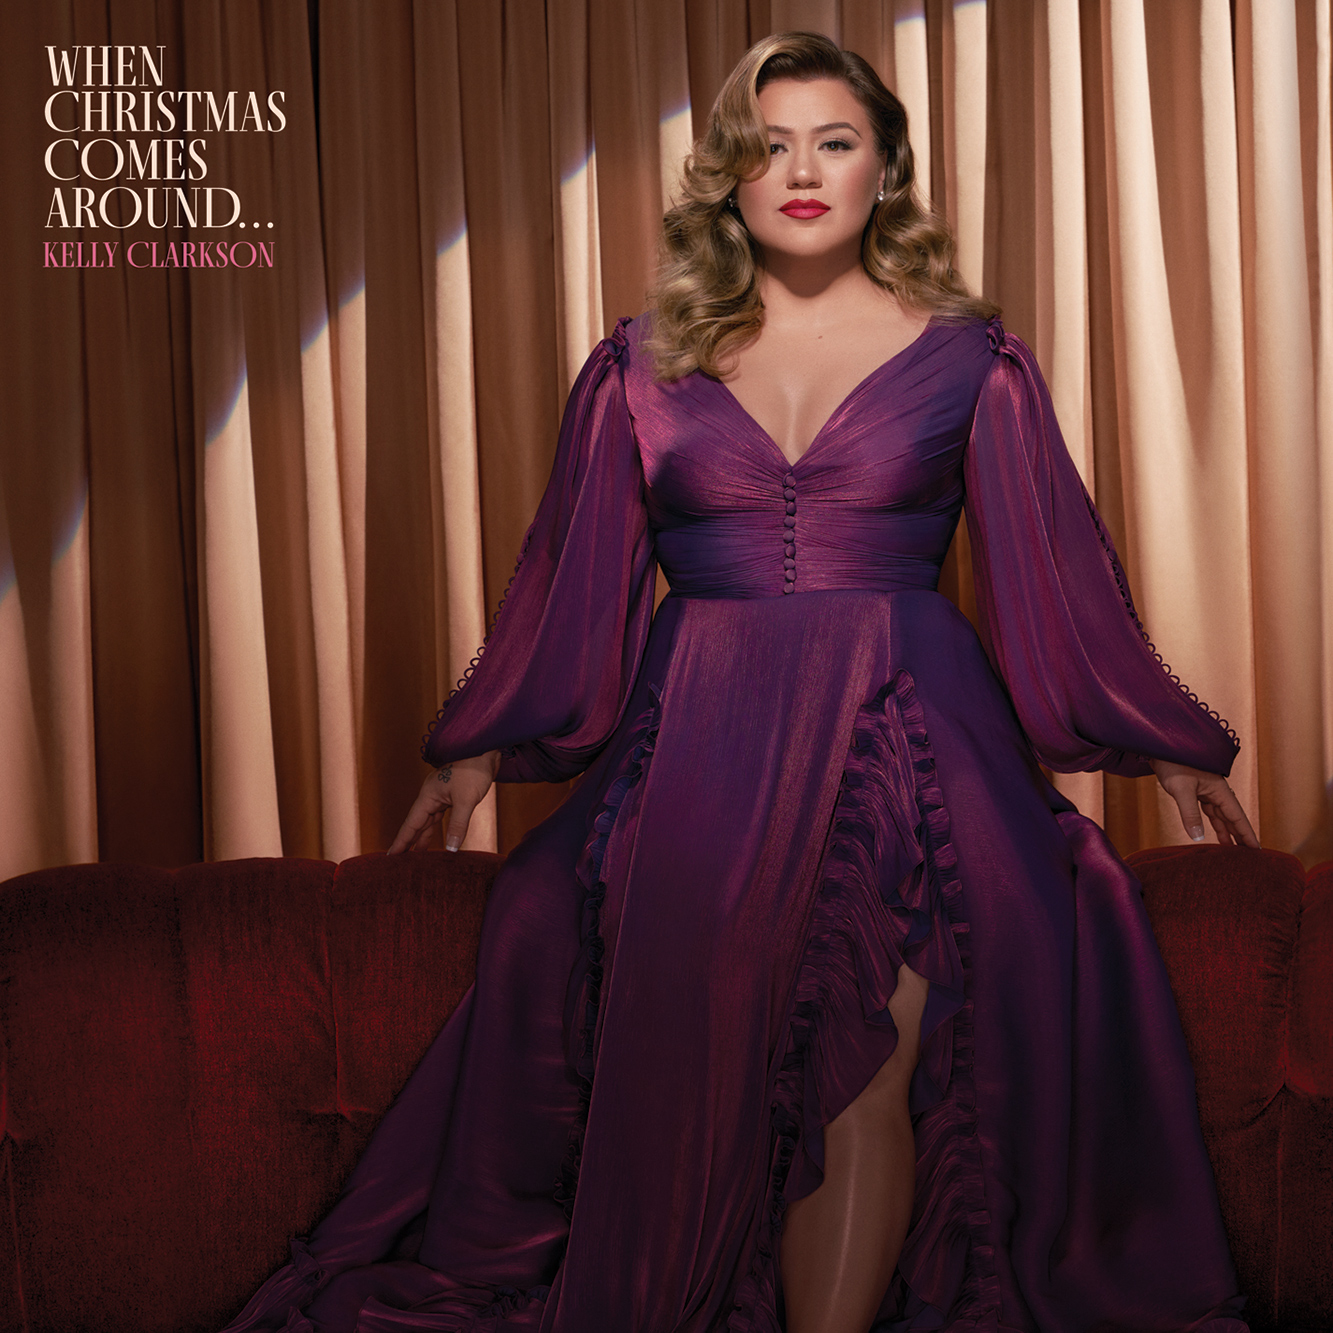 When Christmas Comes Around by Kelly Clarkson